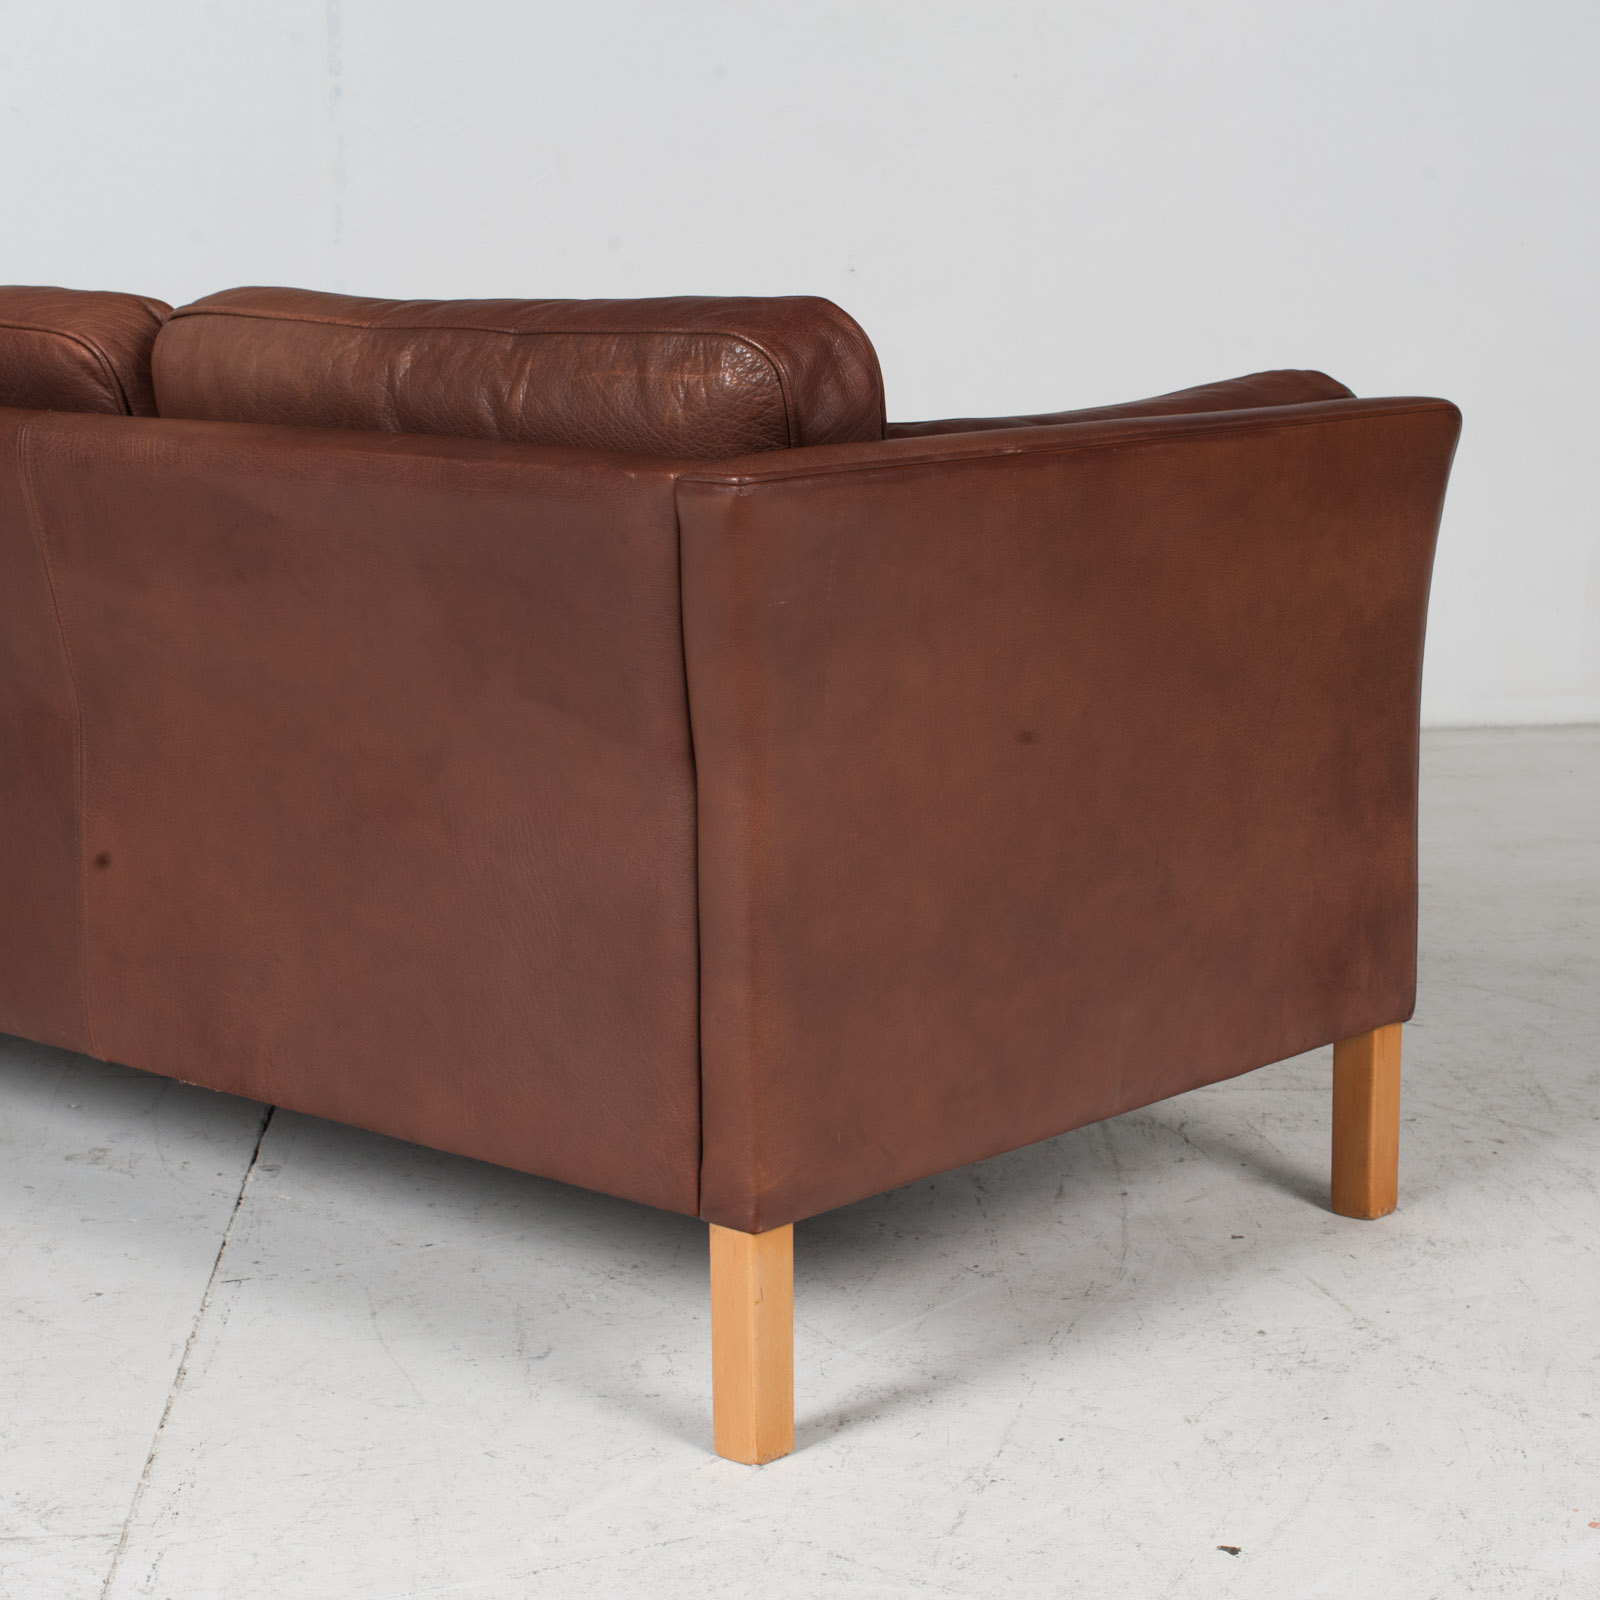 3 Seat Sofa In Brown Leather With Beech Legs, 1960s, Denmark 8